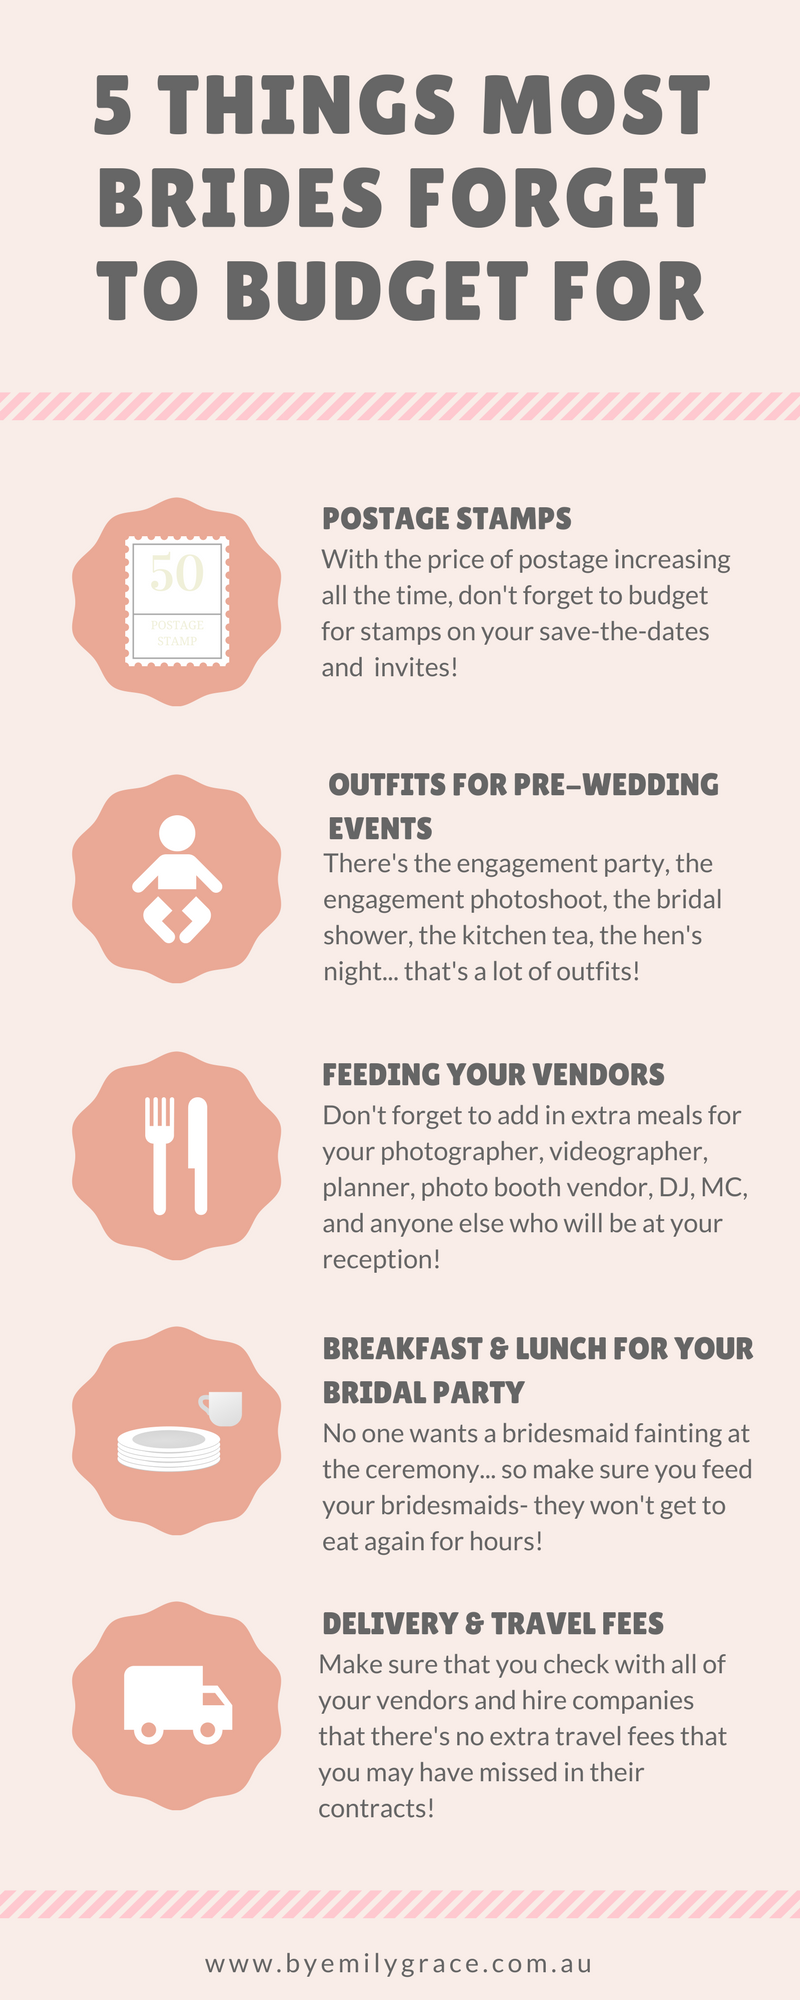 5 things most brides forget to budget for.png